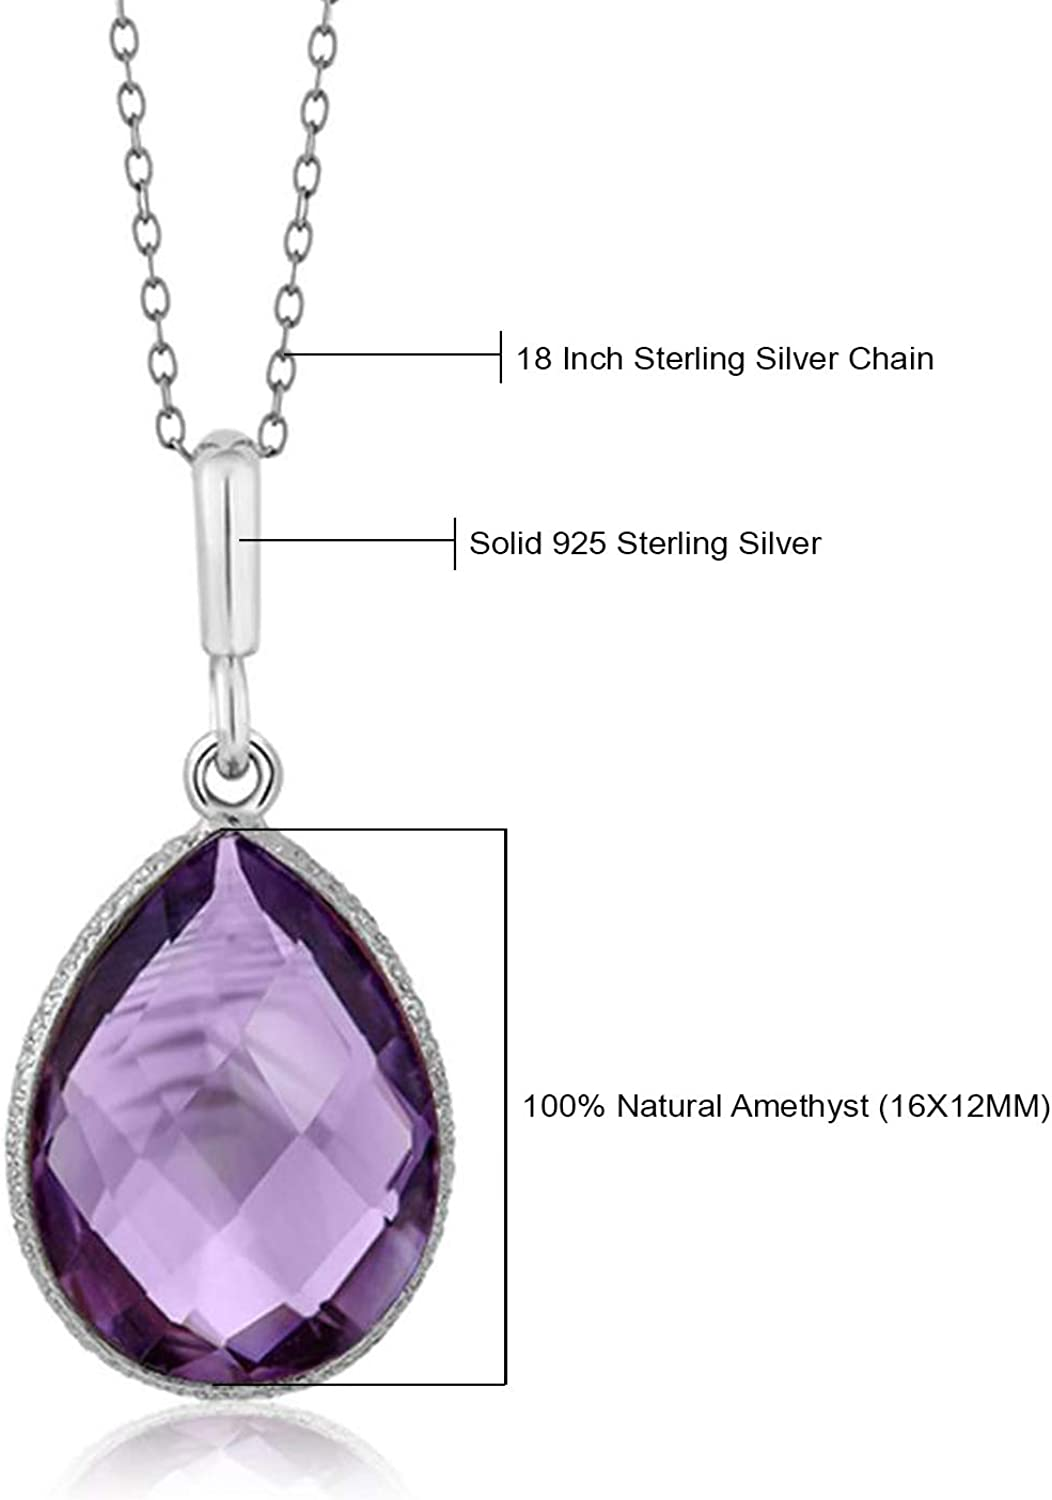 Sterling Silver Amethyst  Poison Locket   Pendant with 24 inch Sterling Silver chain